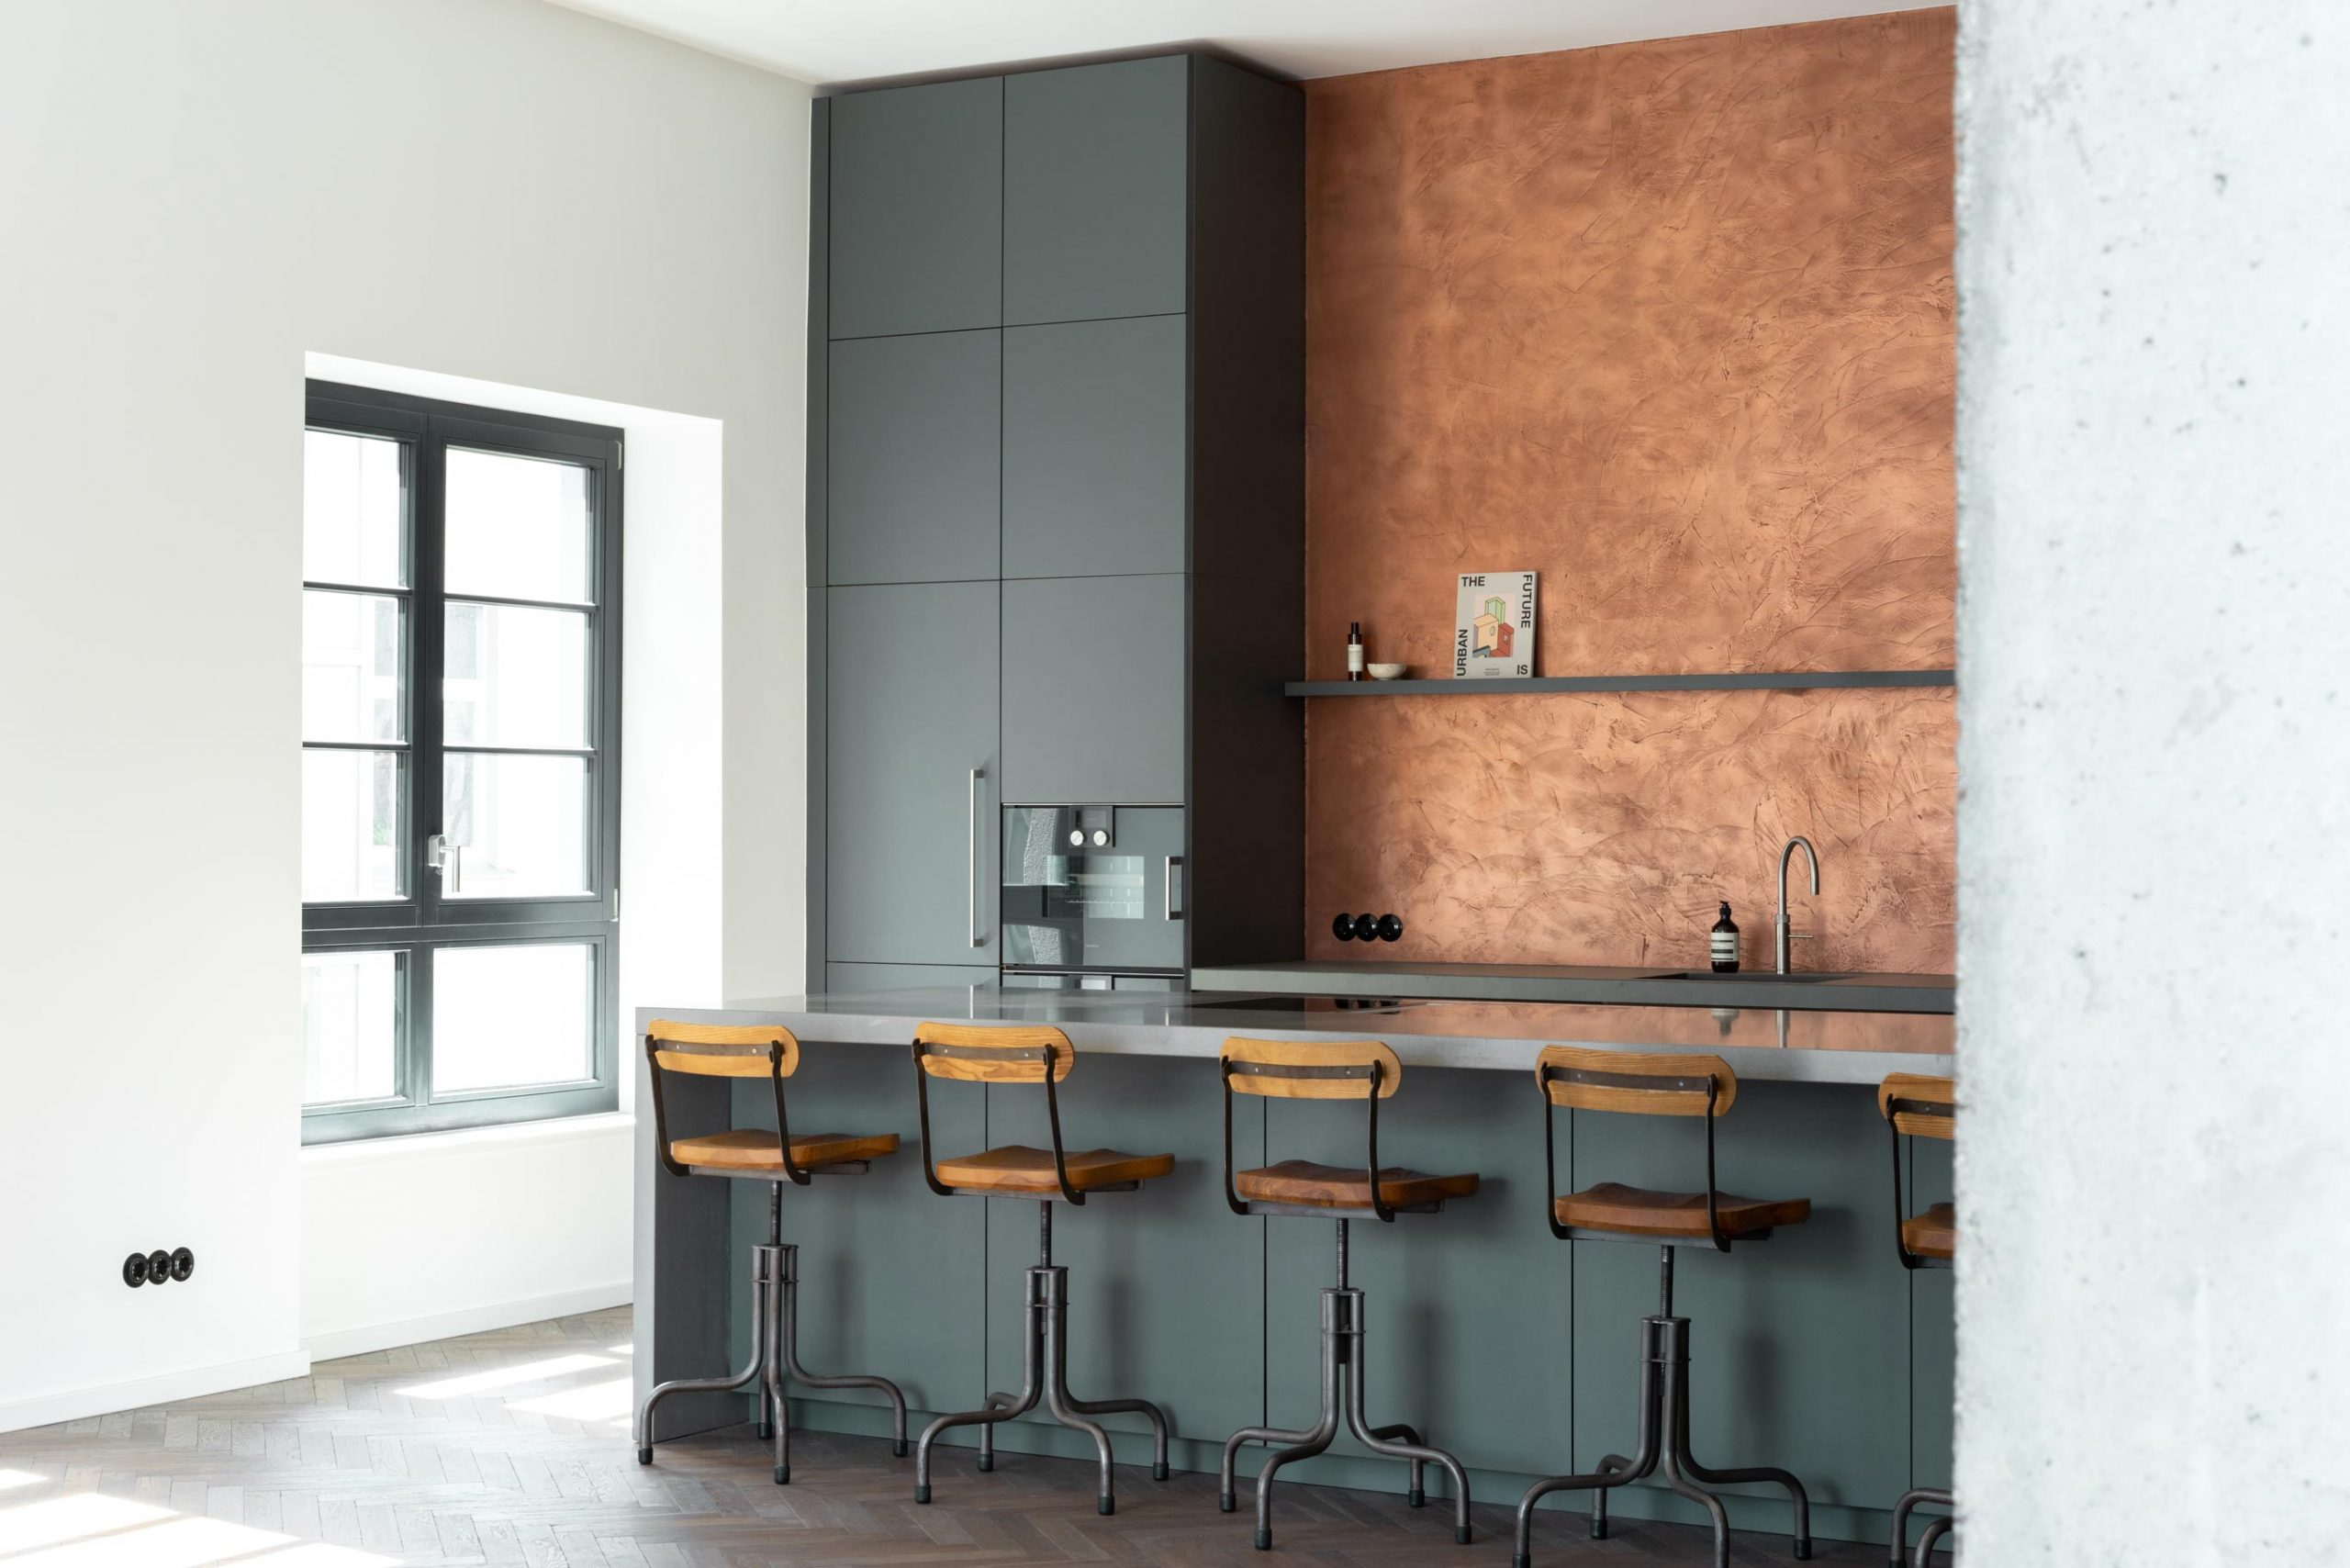 A striking copper - kitchen backsplash / wall